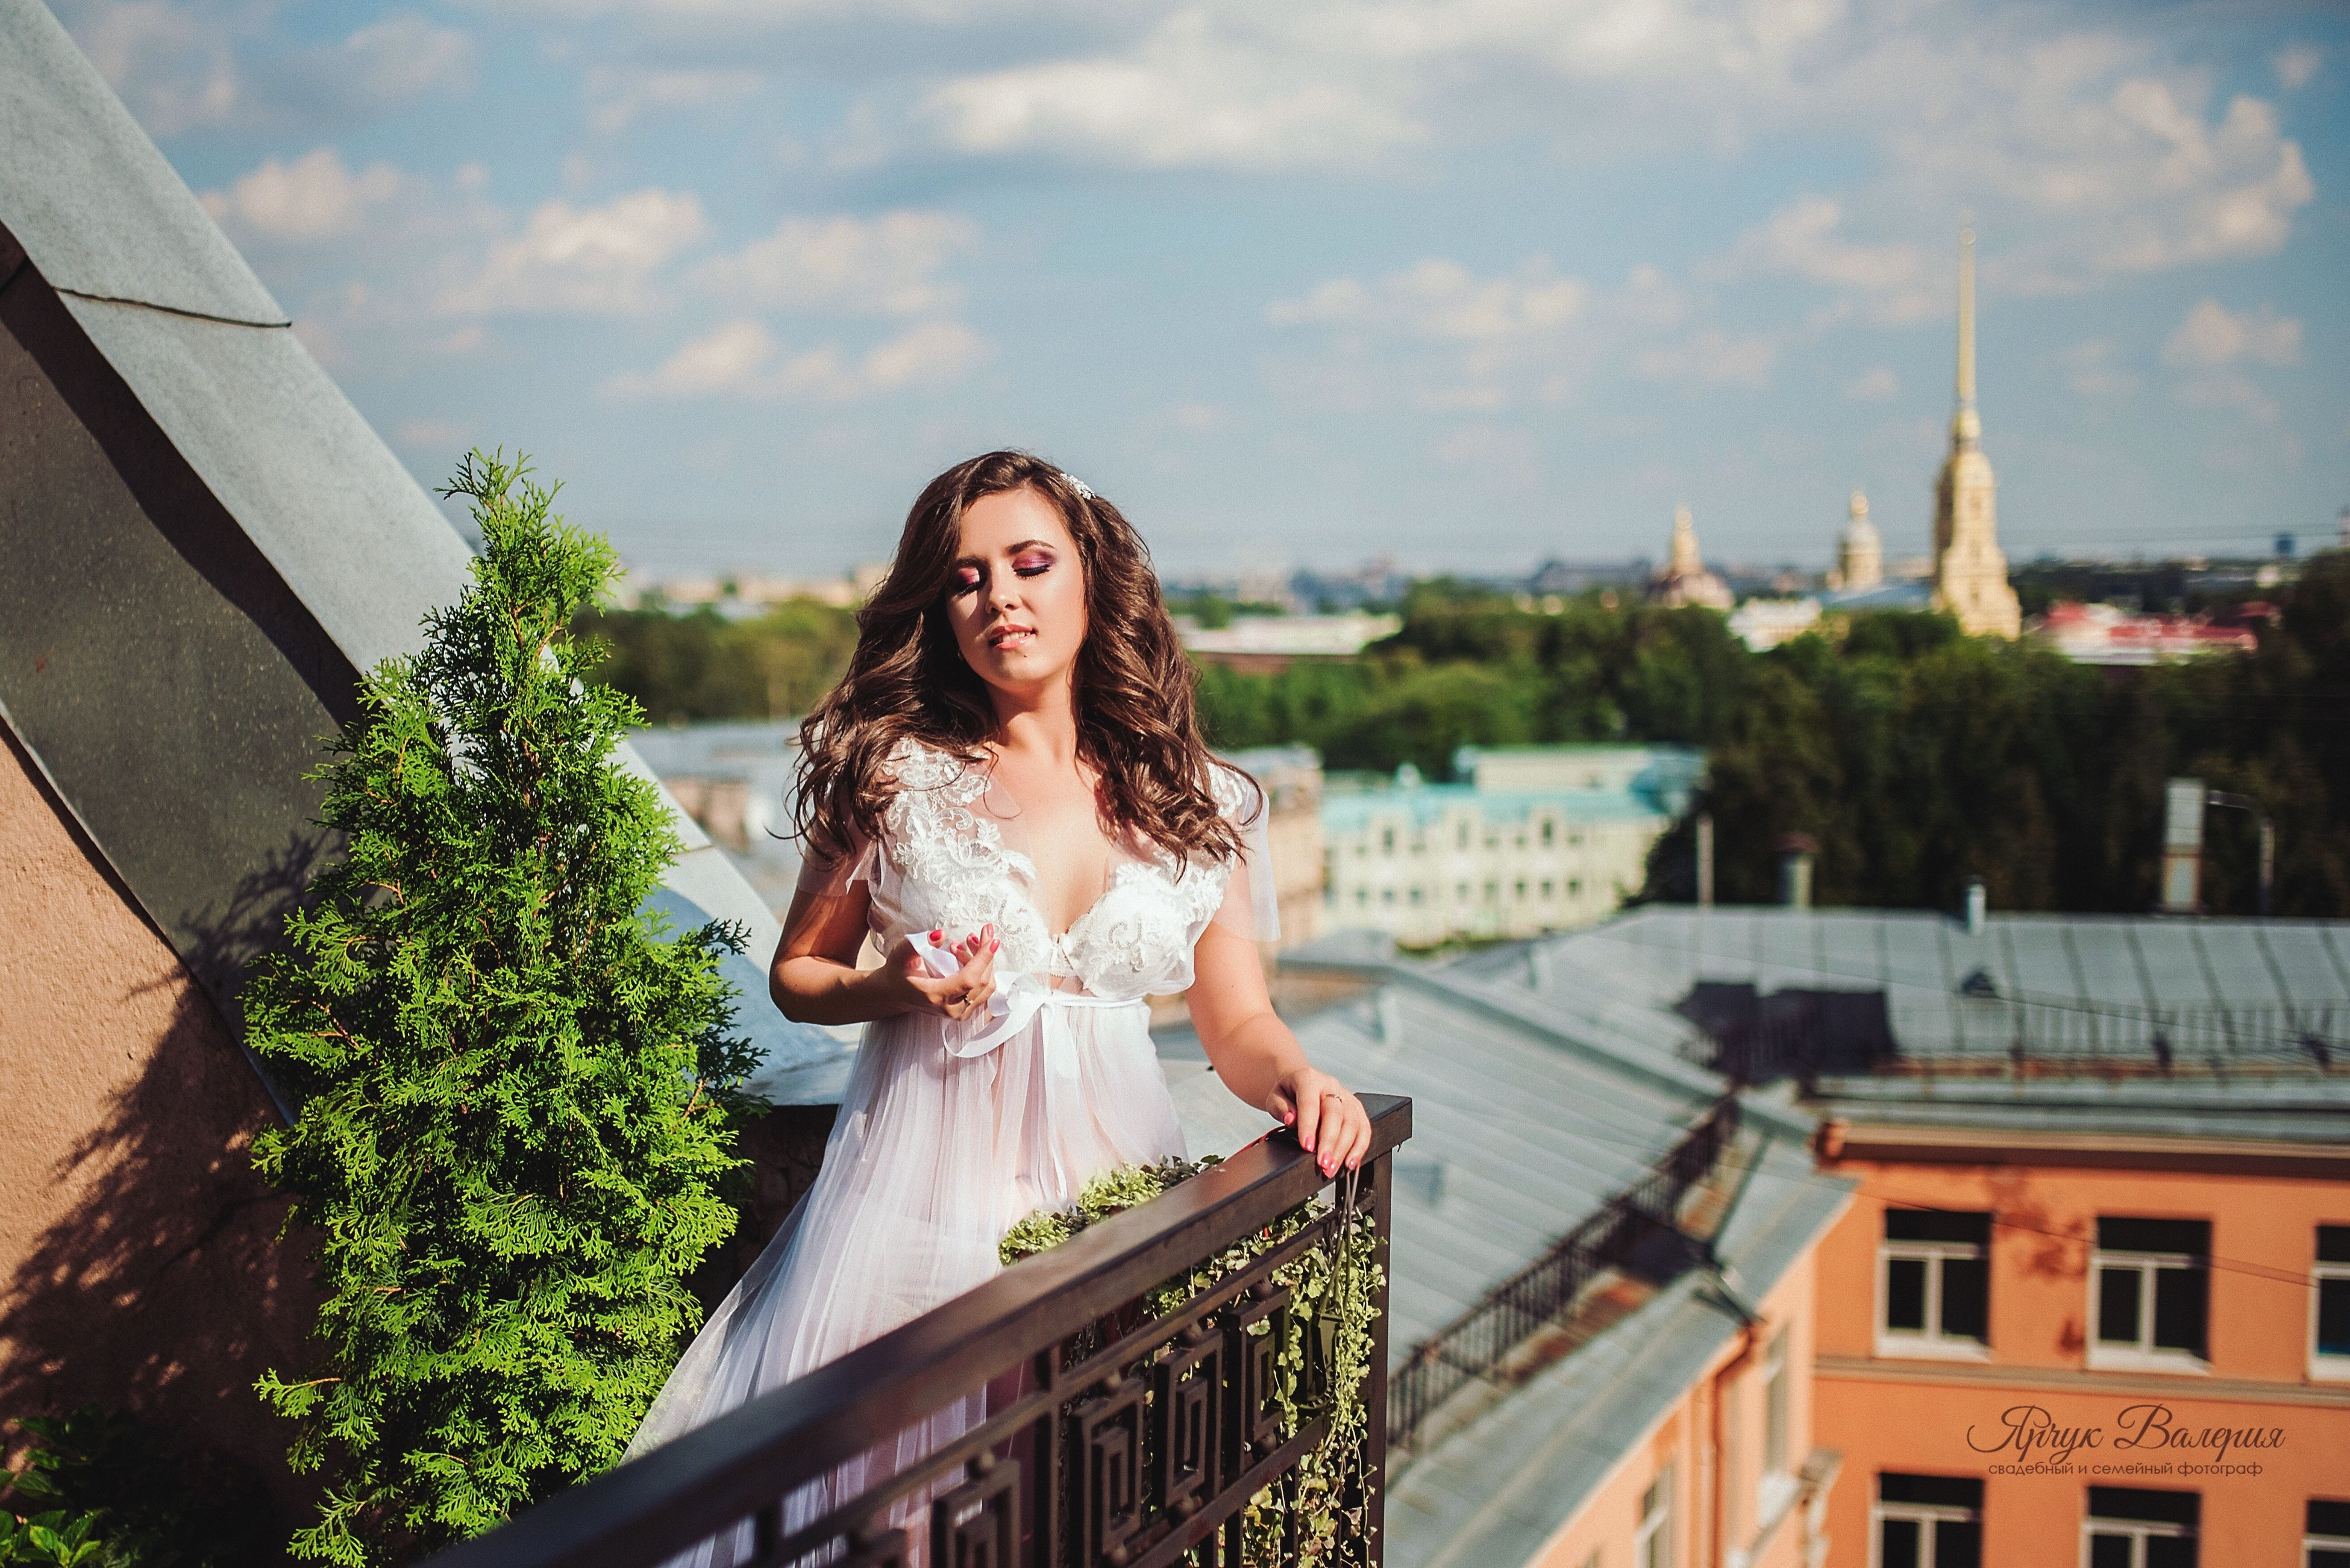 architecture, built structure, building exterior, sky, young women, young adult, tree, casual clothing, long hair, city, person, beauty, place of worship, city life, focus on foreground, day, outdoors, terrace, cloud - sky